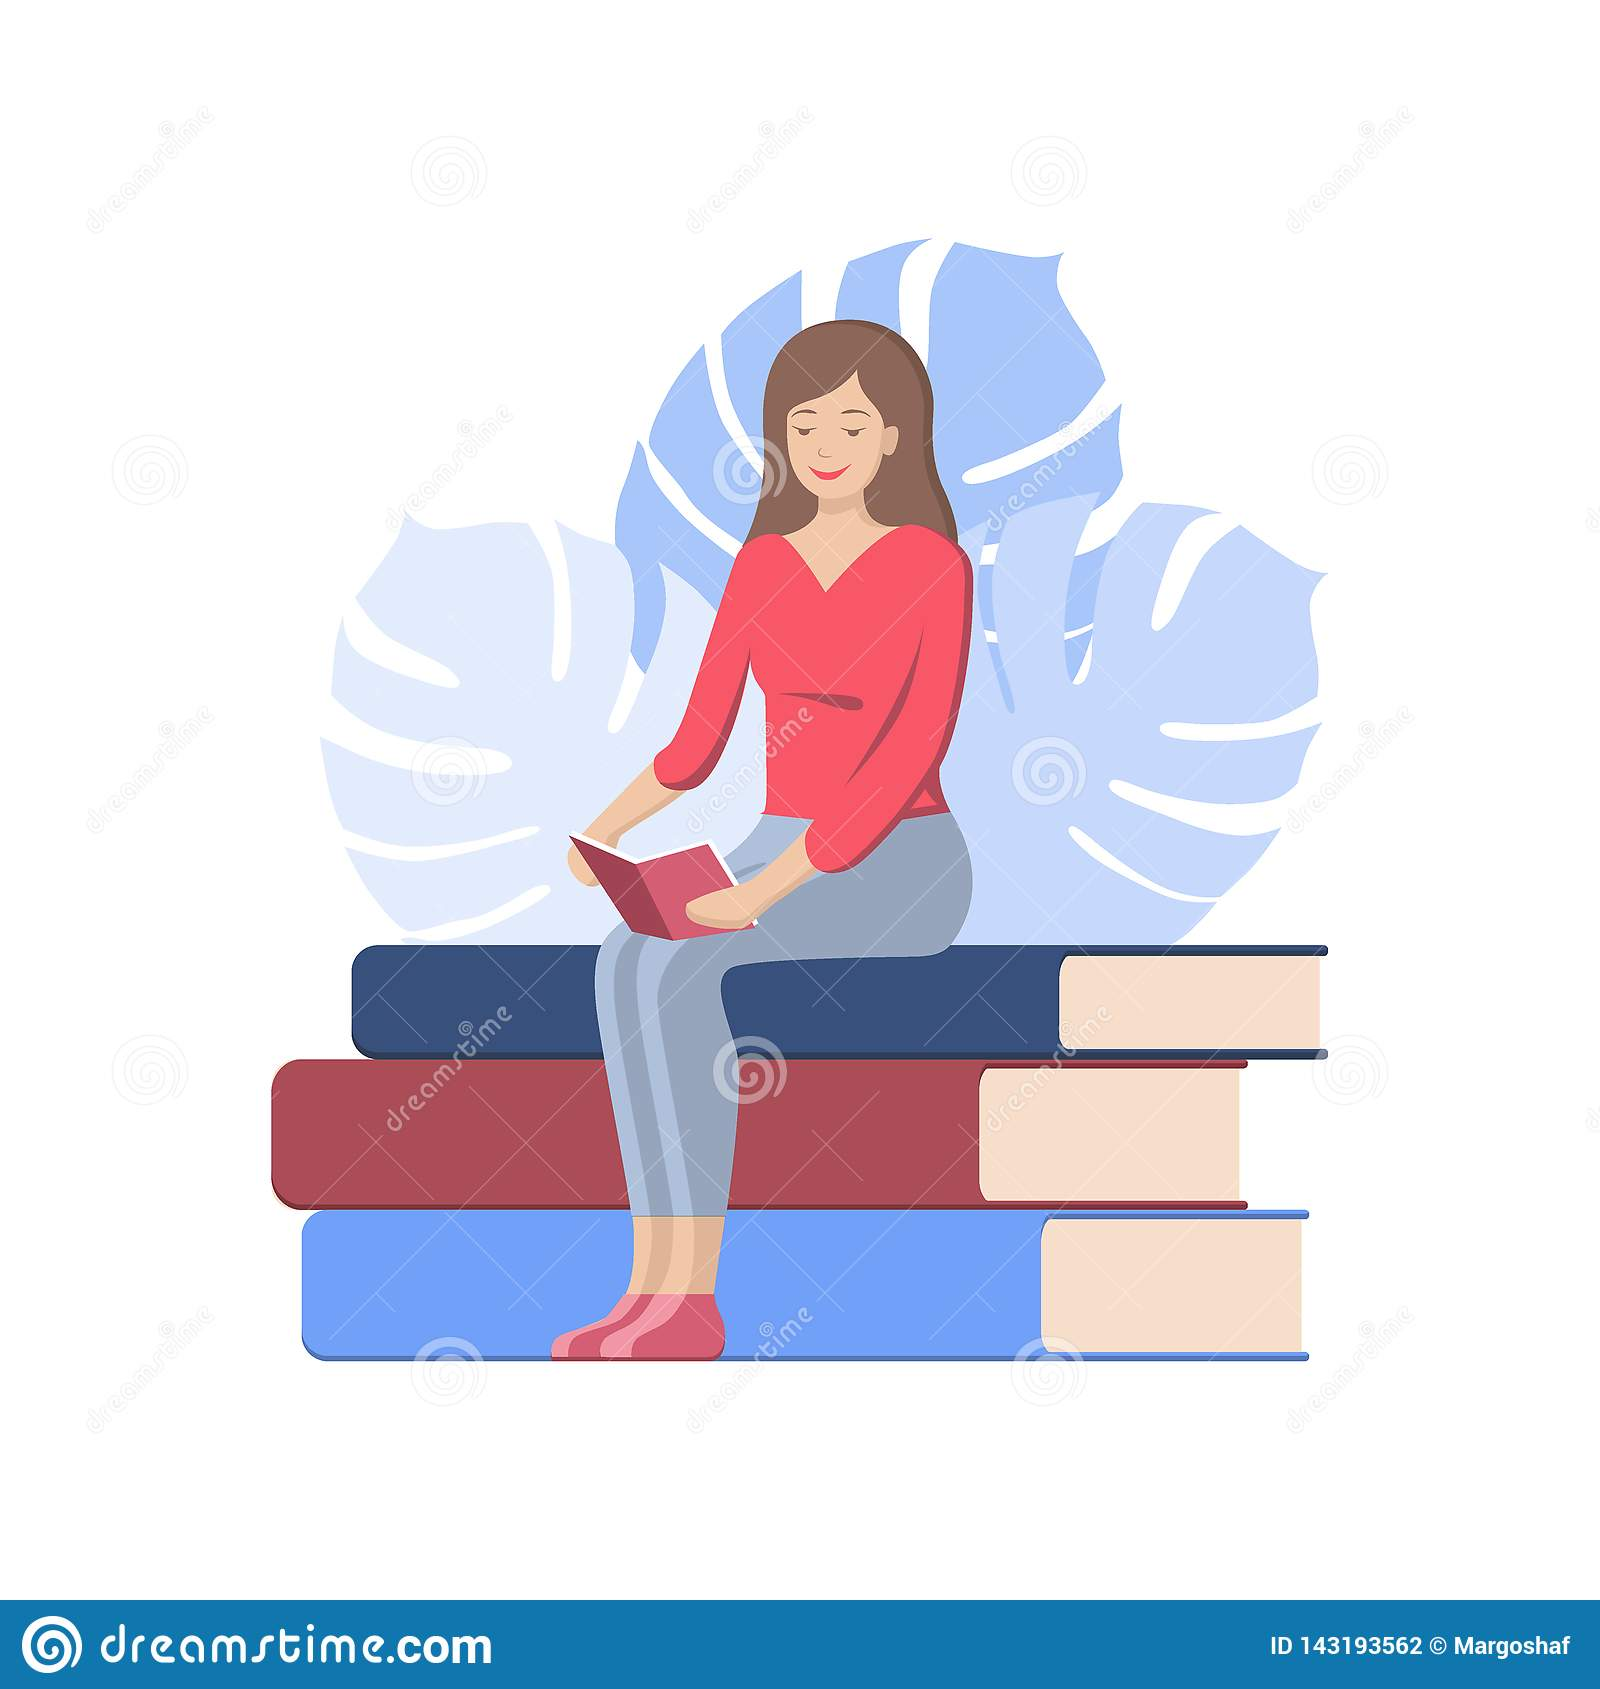 World book day poster. Woman reading a book, icon vector, book lover flat cartoon illustration, library logo